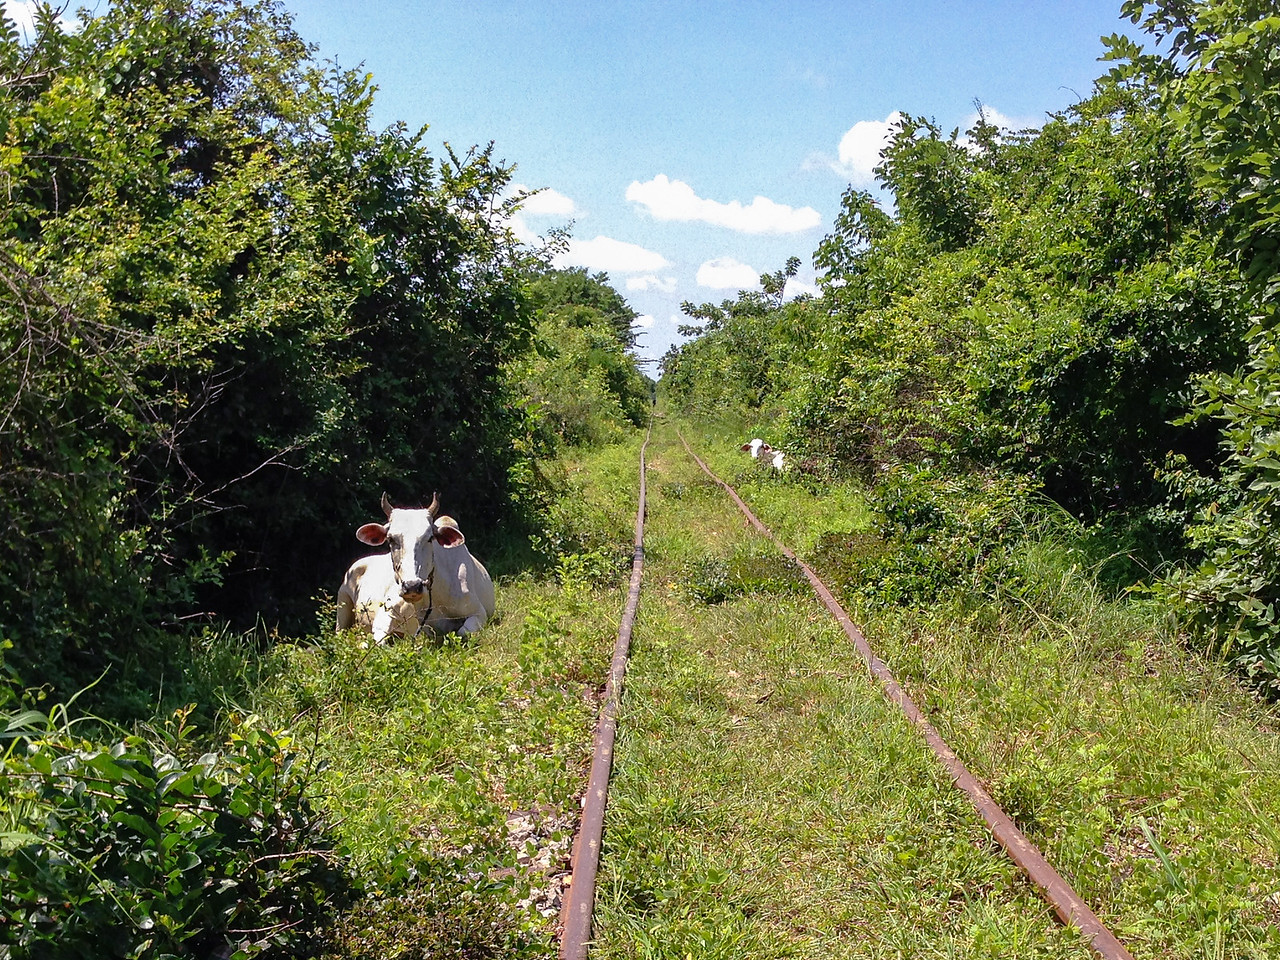 Hazards on the Bamboo Railroad in Battambang